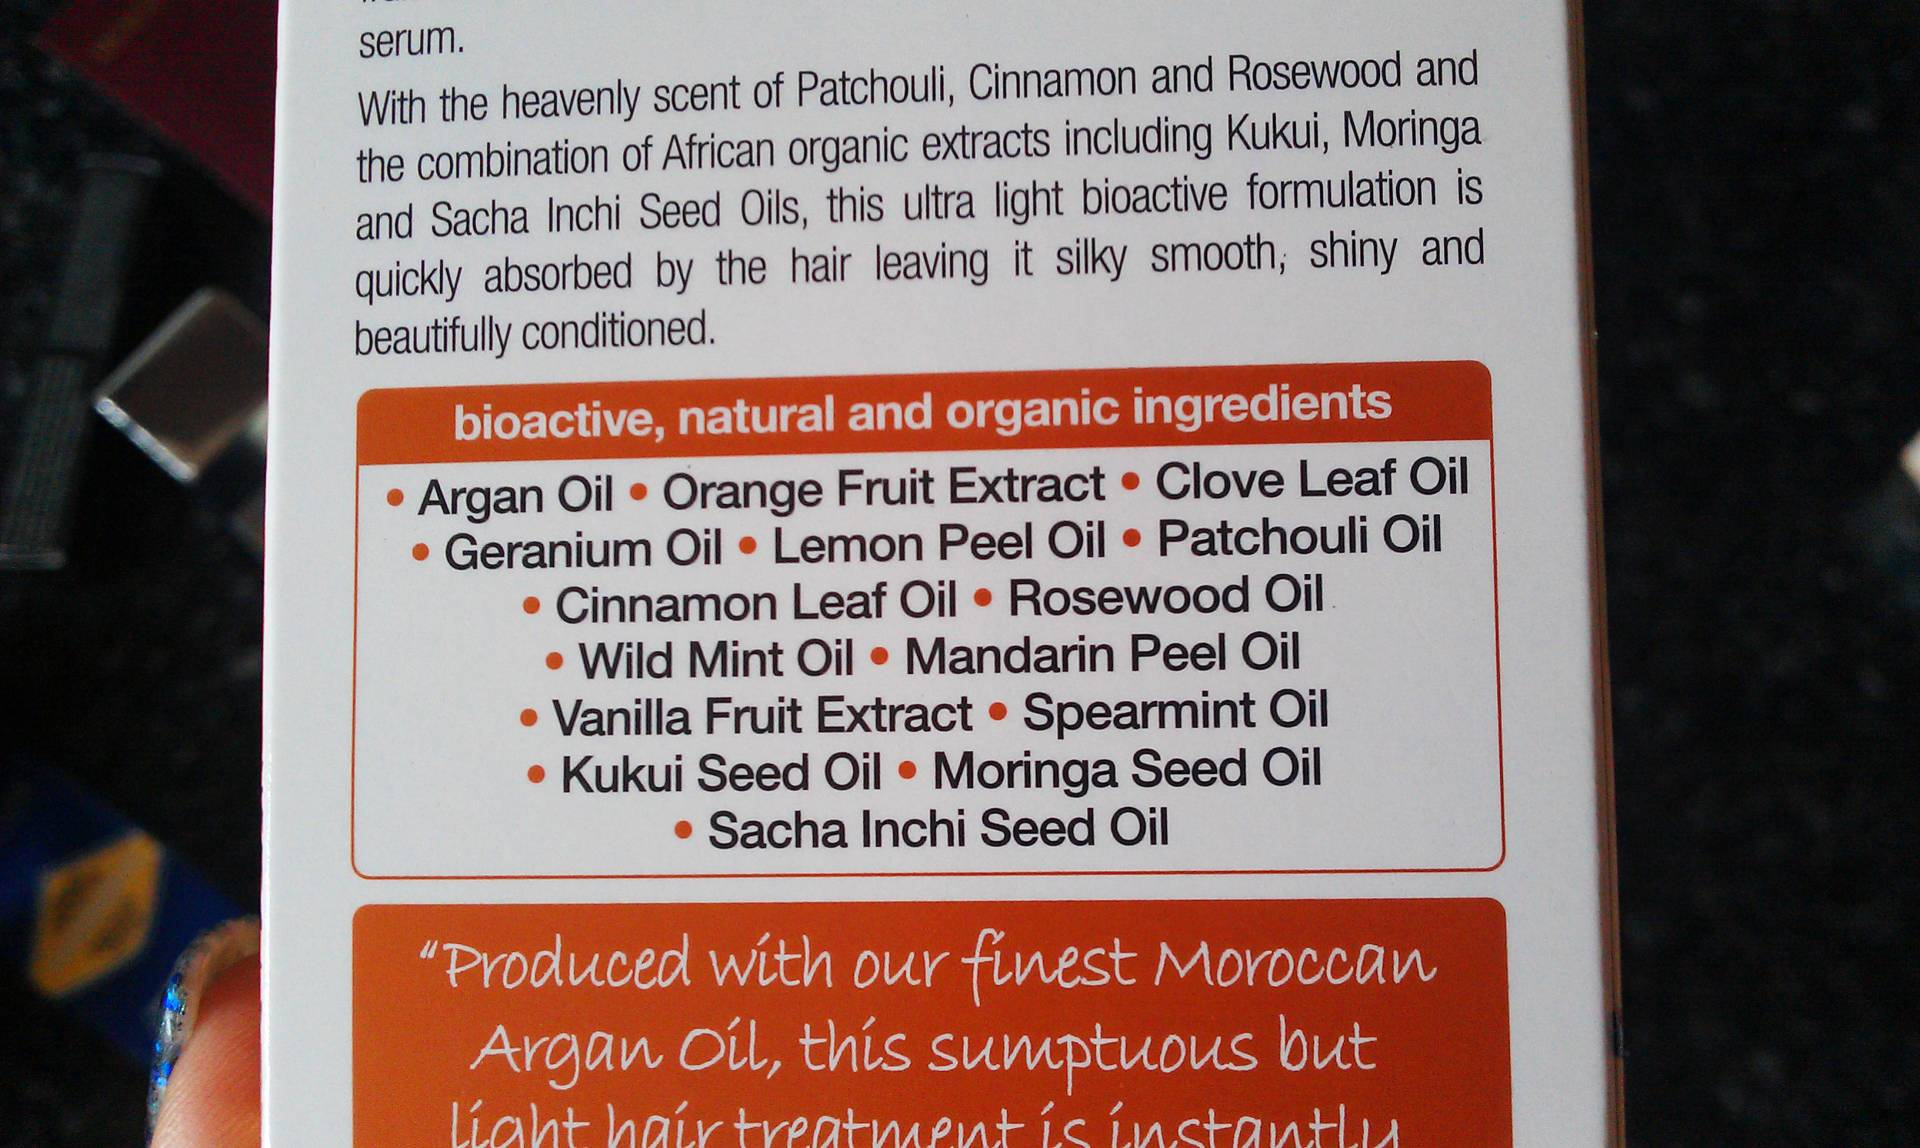 Dr Organic Argan Oil Hair Treatment Serum ingredients list